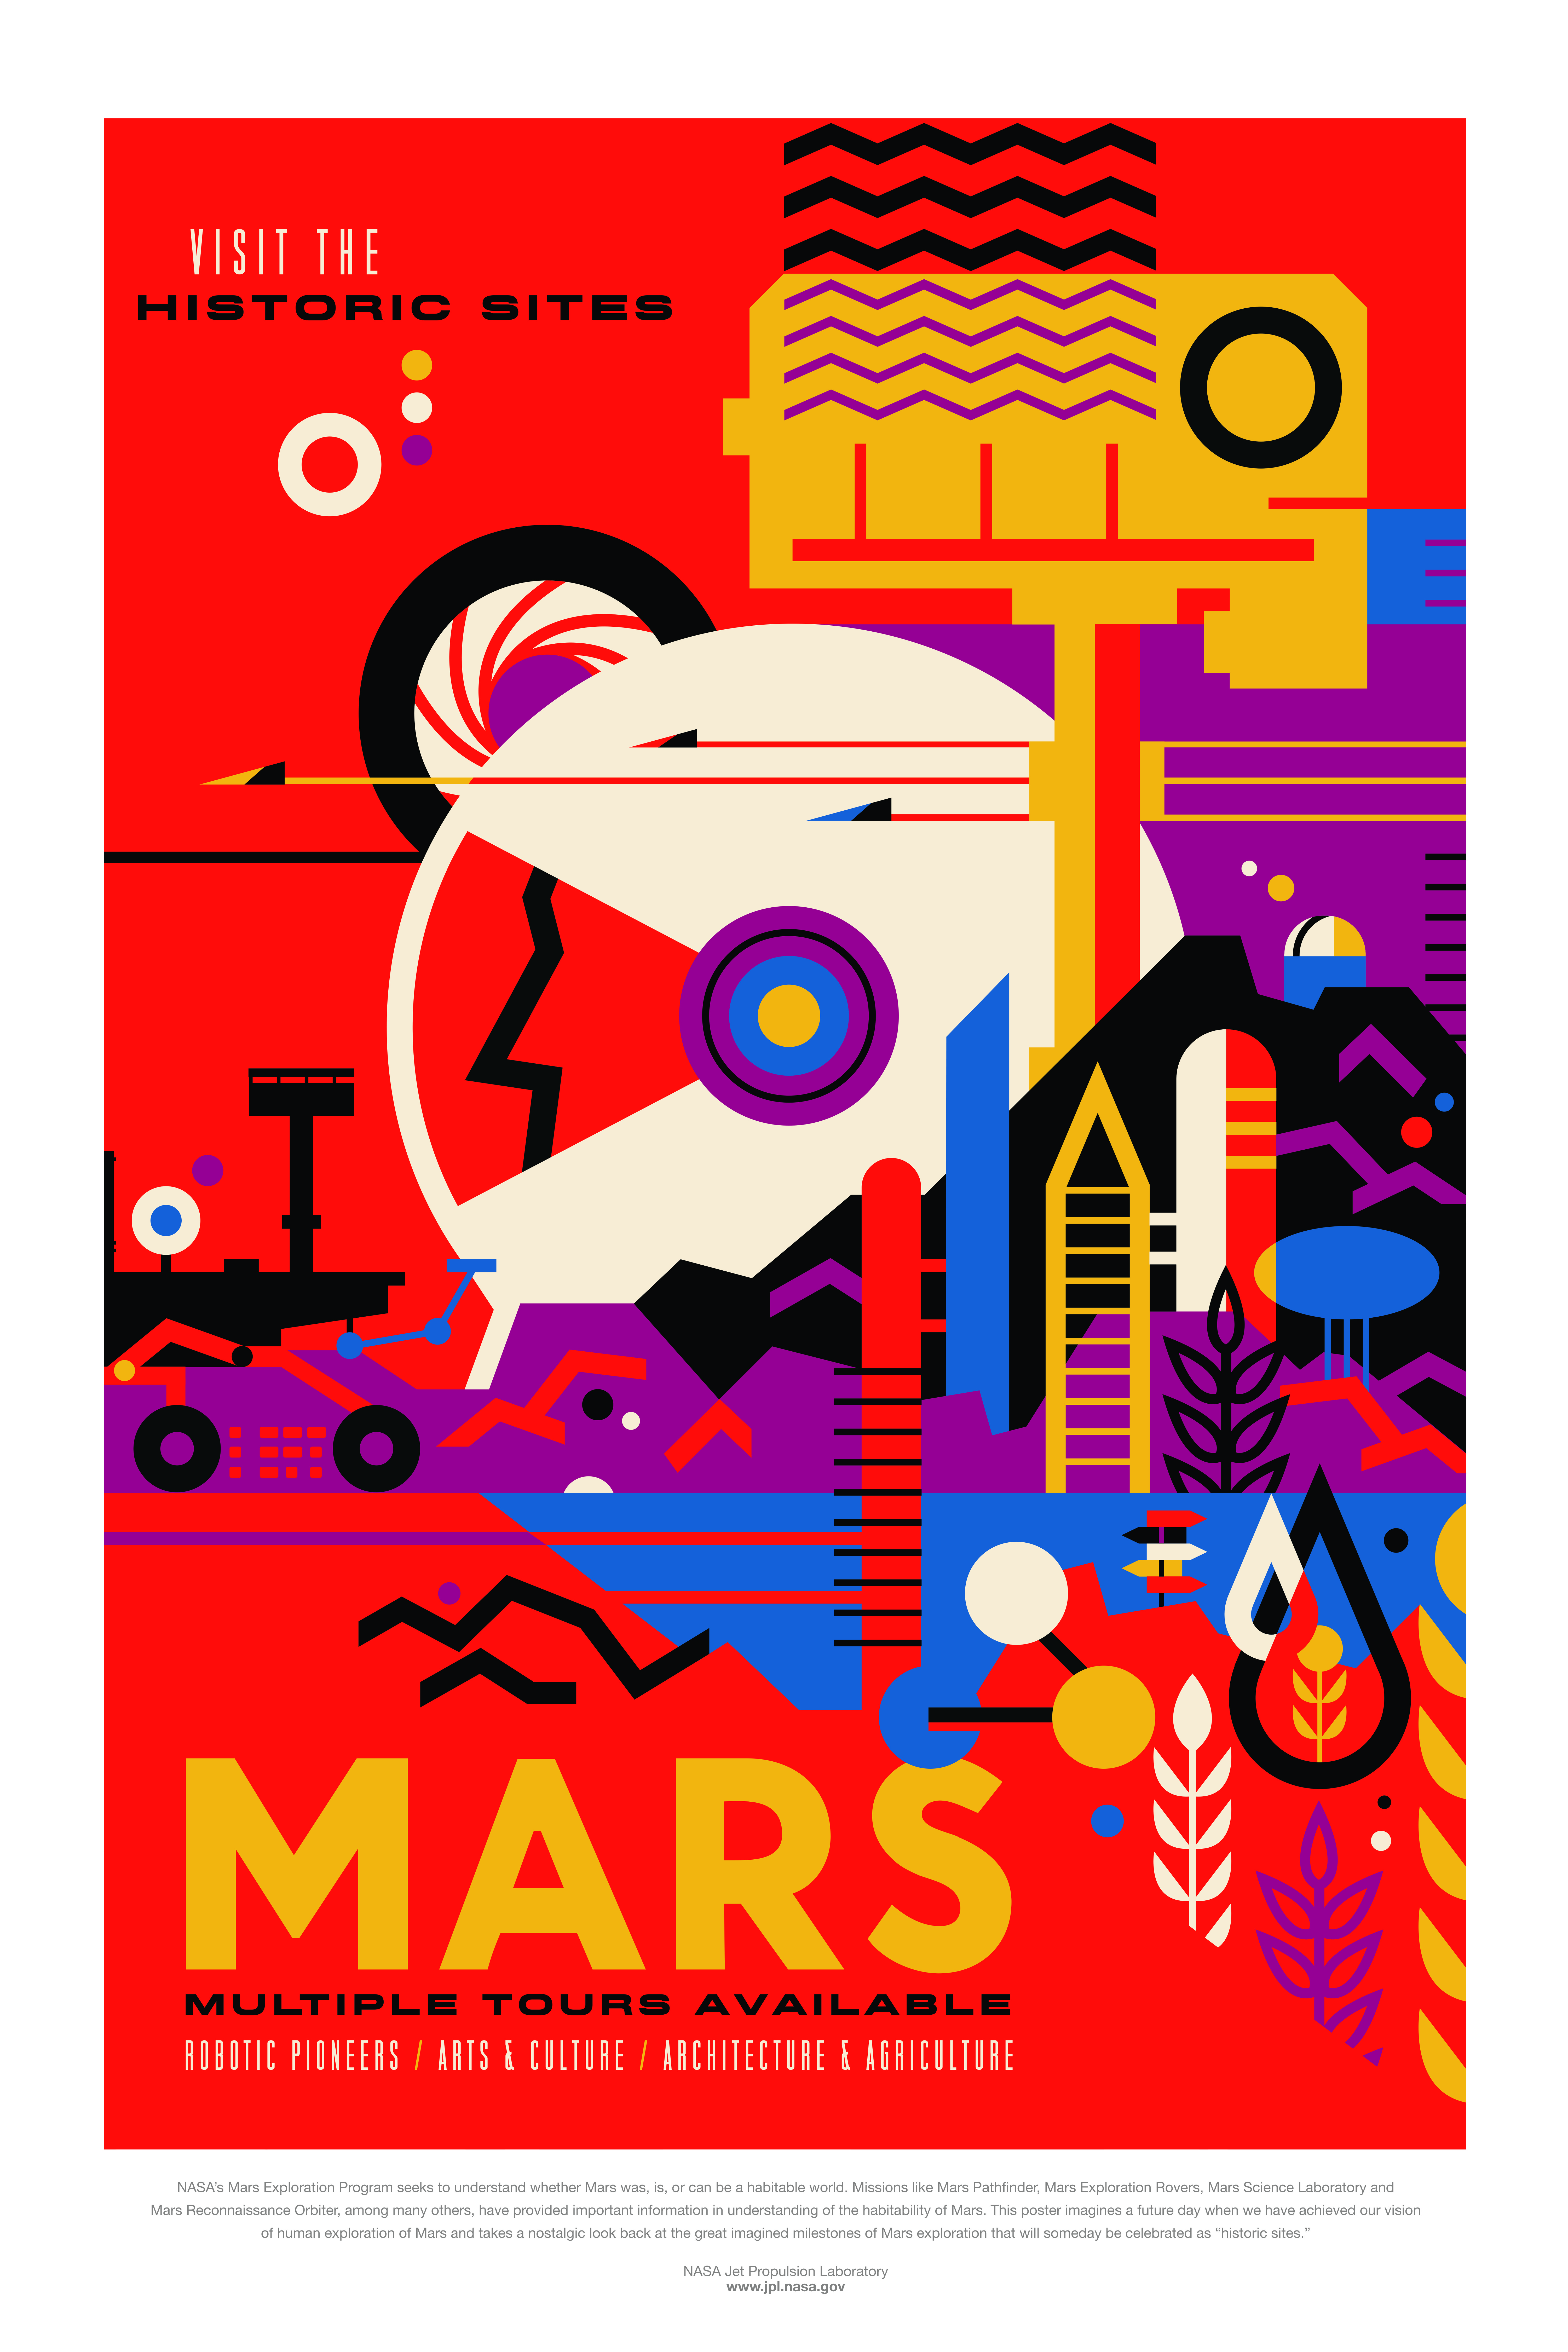 """NASA's Mars Exploration Program seeks to understand whether Mars was, is, or can be a habitable world. Mission like Mars Pathfinder, Mars Exploration Rovers, Mars Science Laboratory and Mars Reconnaissance Orbiter, among many others, have provided important information in understanding of the habitability of Mars. This poster imagines a future day when we have achieved our vision of human exploration of Mars and takes a nostalgic look back at the great imagined milestones of Mars exploration that will someday be celebrated as """"historic sites."""""""